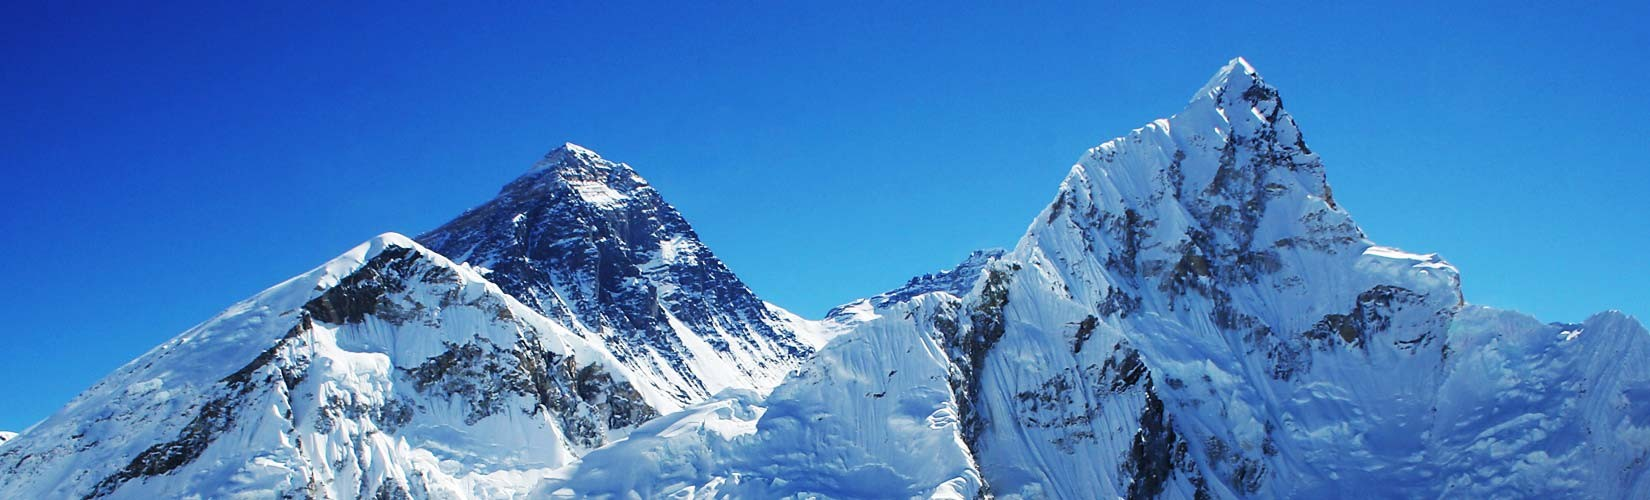 Everest Base Camp Trek 3 Days is Shortest Trek in Everest Region